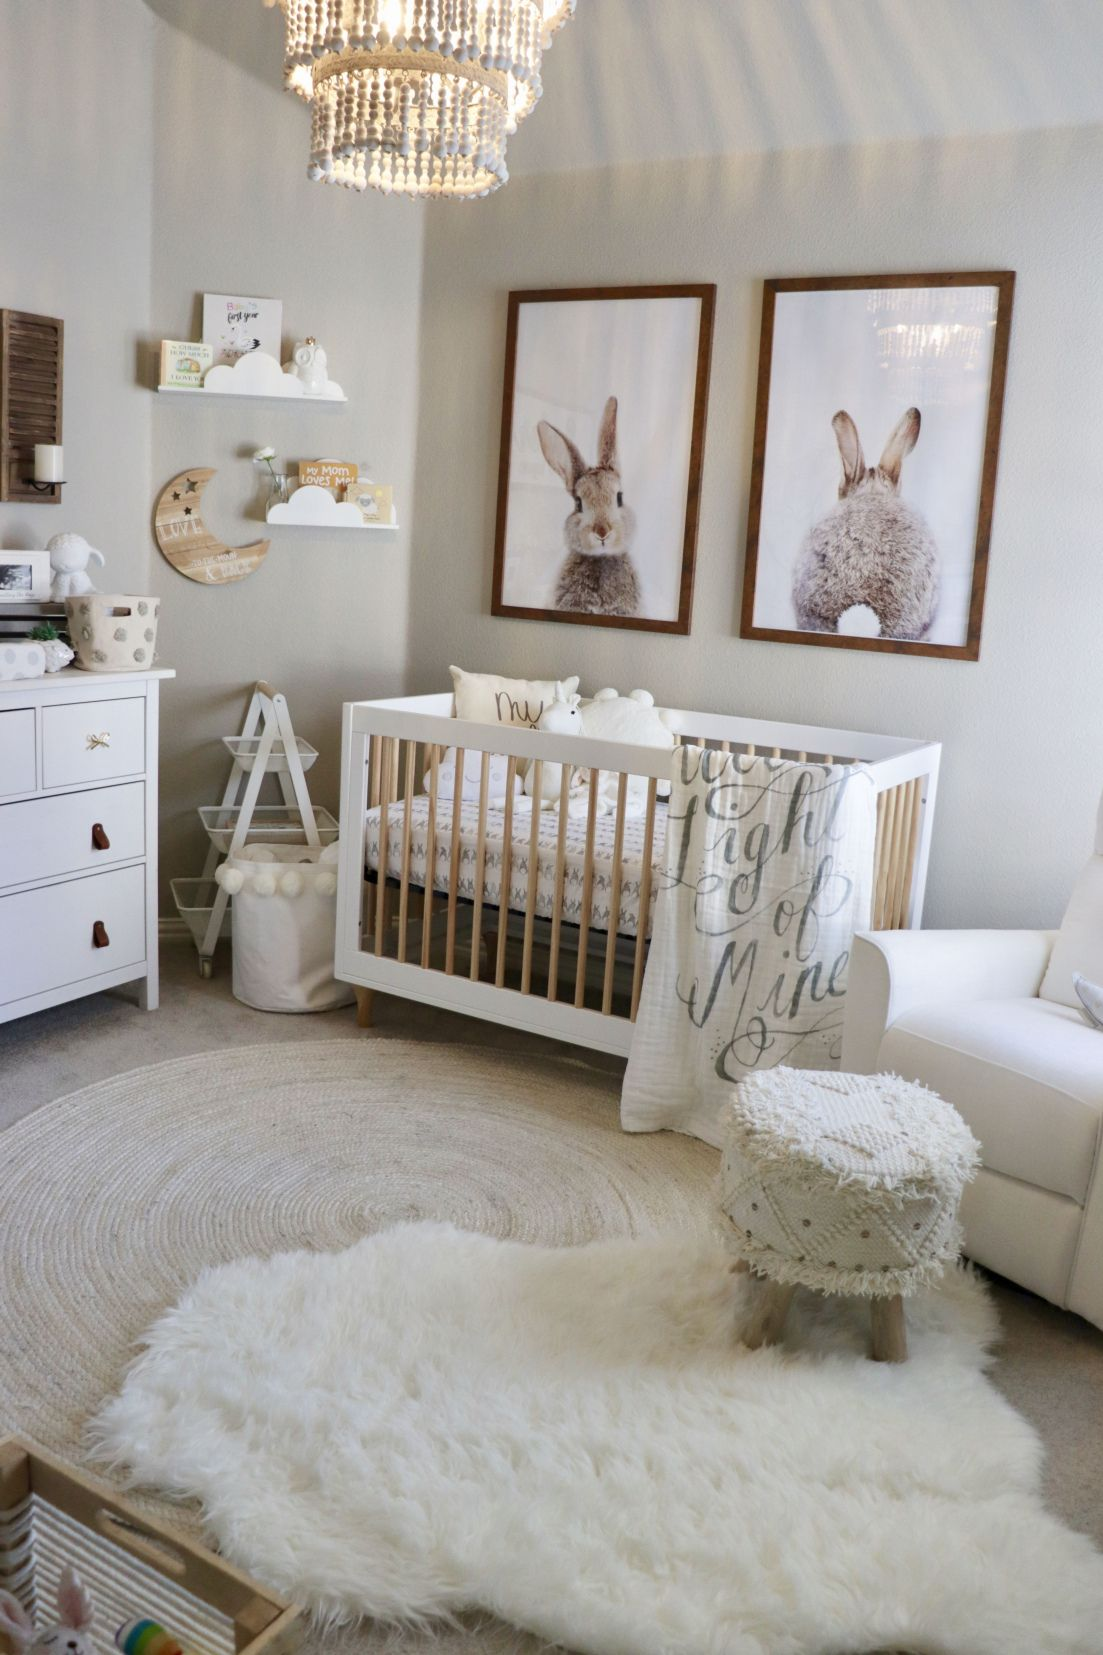 2018 Ideas For A Nursery Baby Room Guest Bedroom Decorating Check More At Http